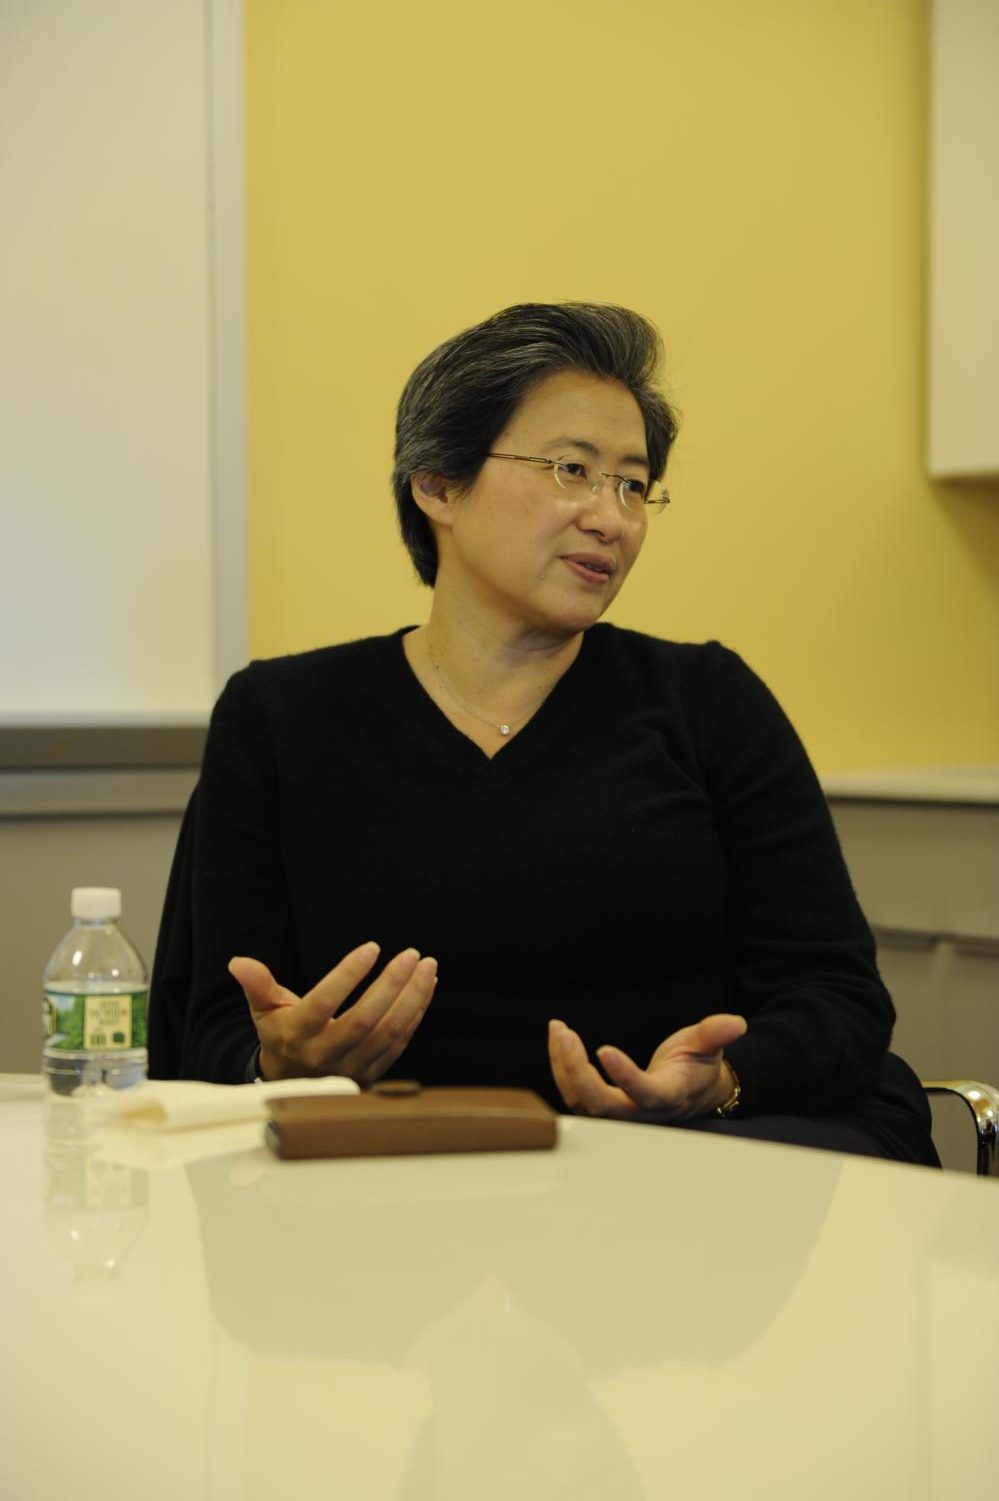 Lisa Su '86 answers questions about her career in a student interview.